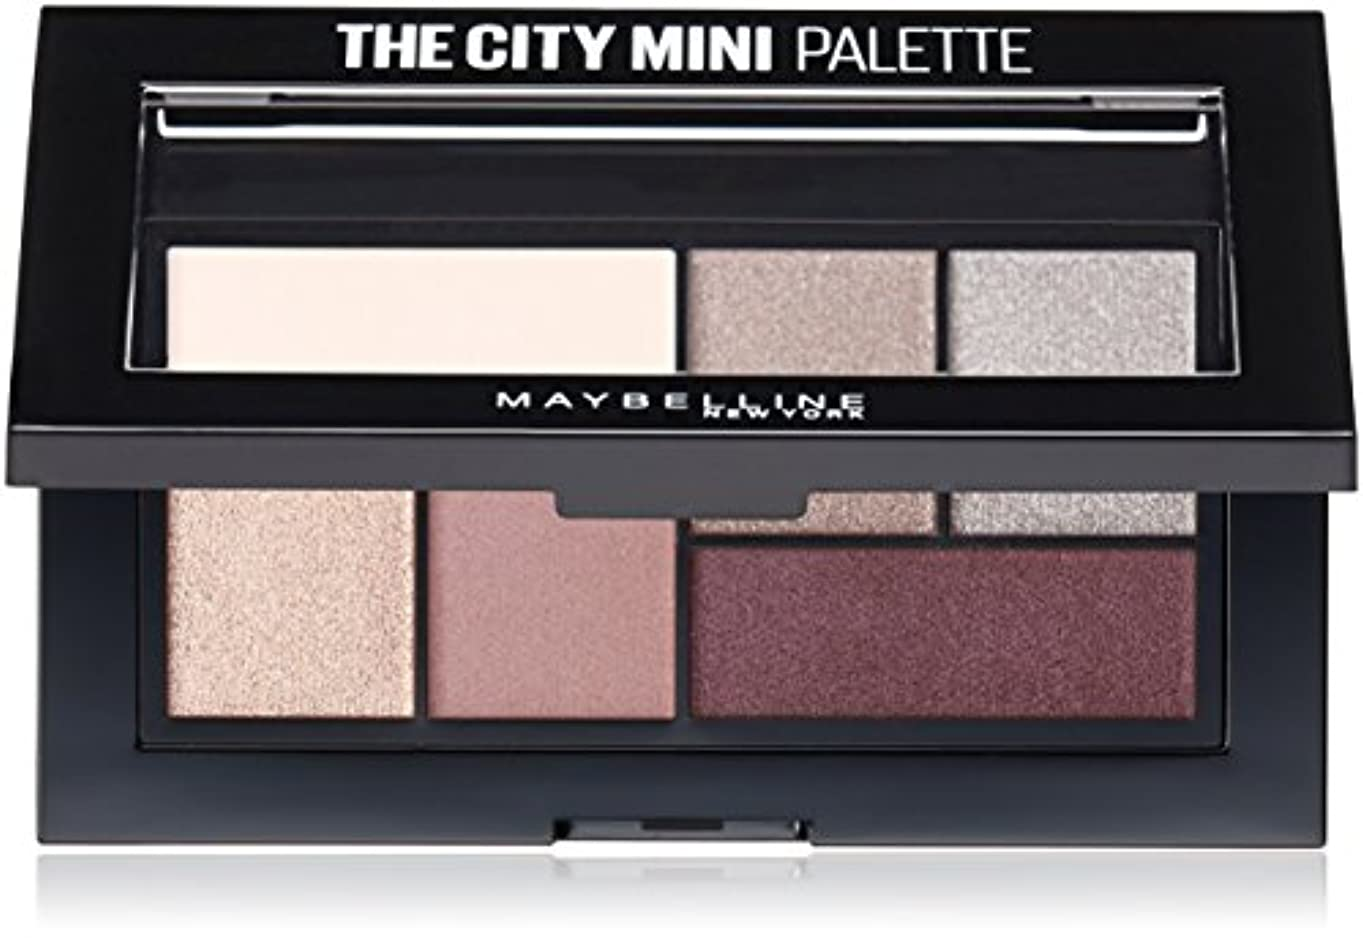 MAYBELLINE The City Mini Palette - Chill Brunch Neutrals (並行輸入品)